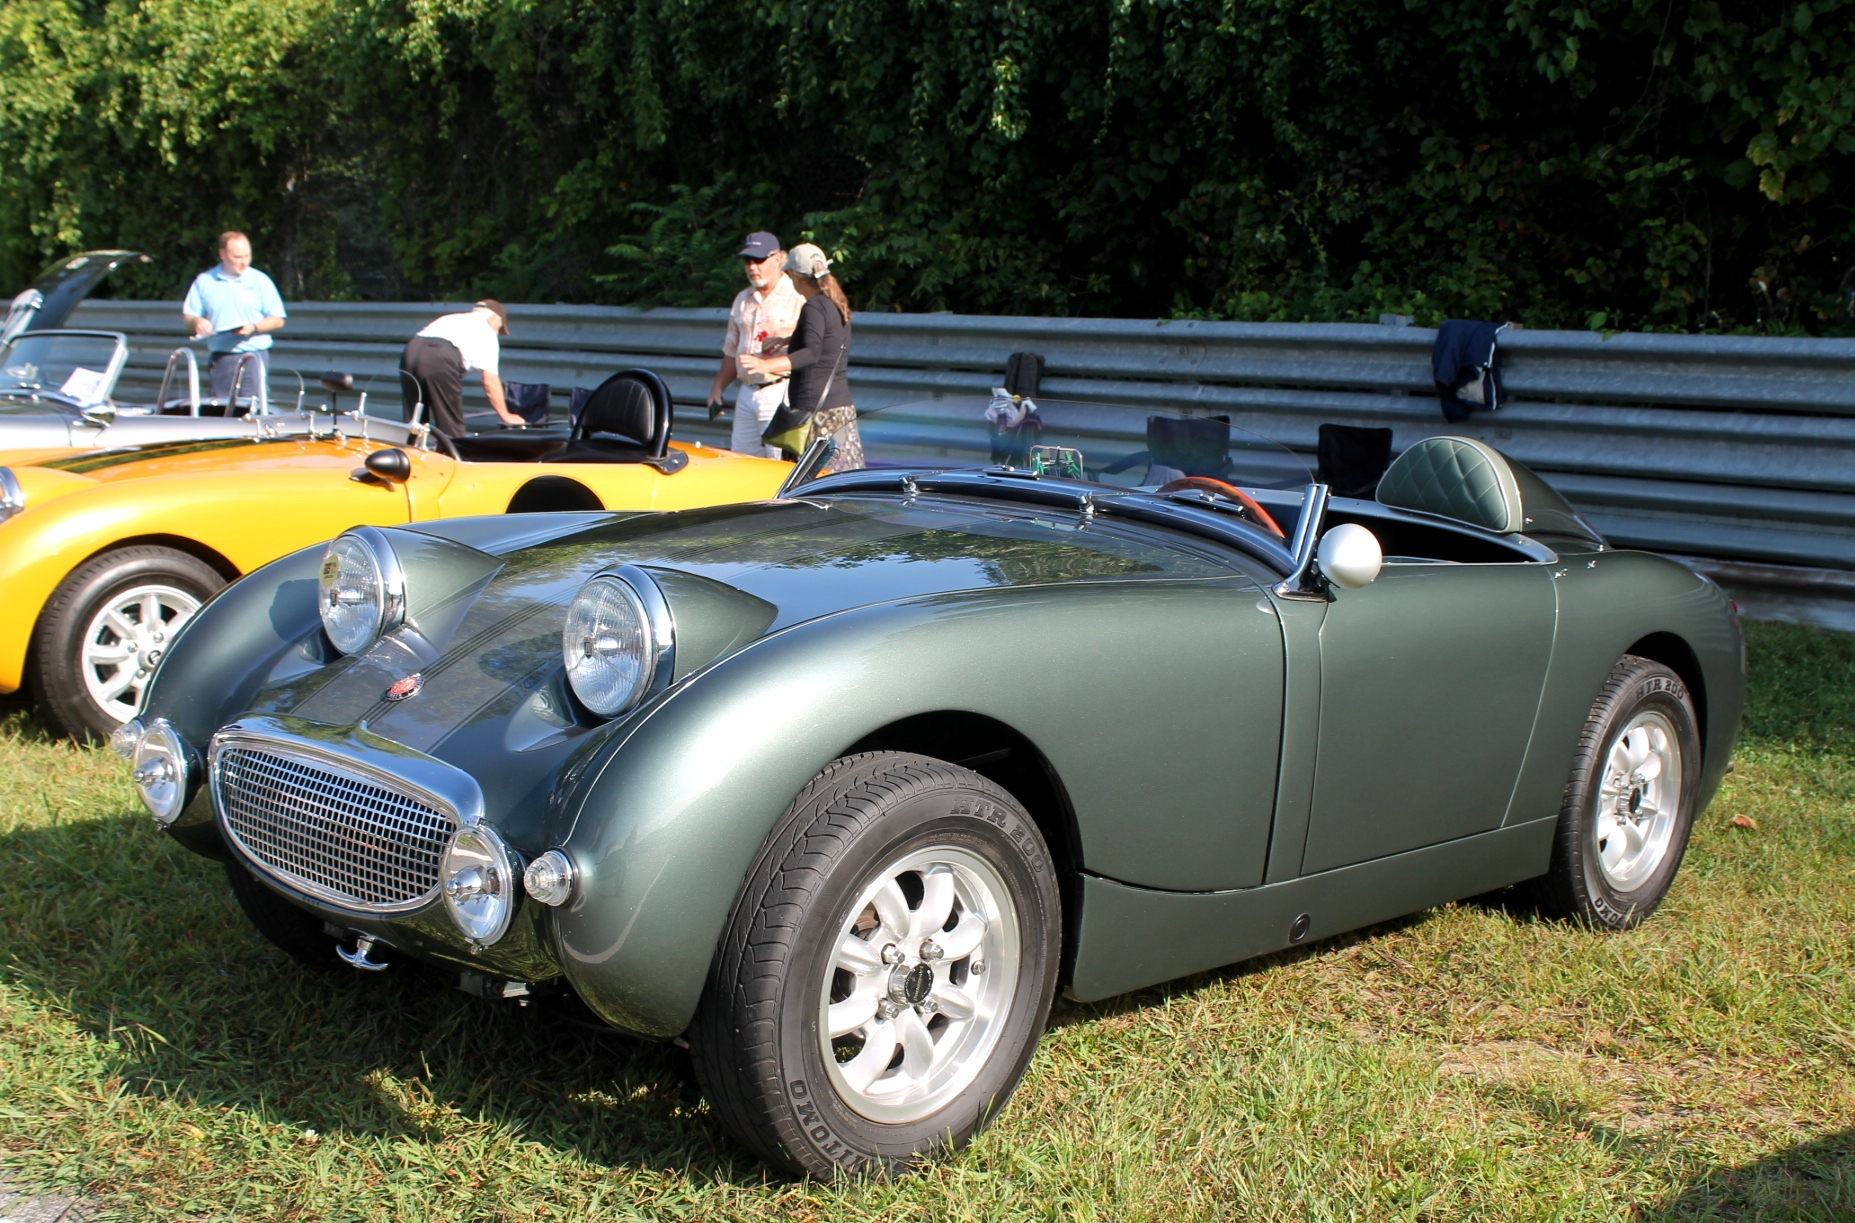 Some Photos From The Lime Rock Historic Festival - Car shows today near me